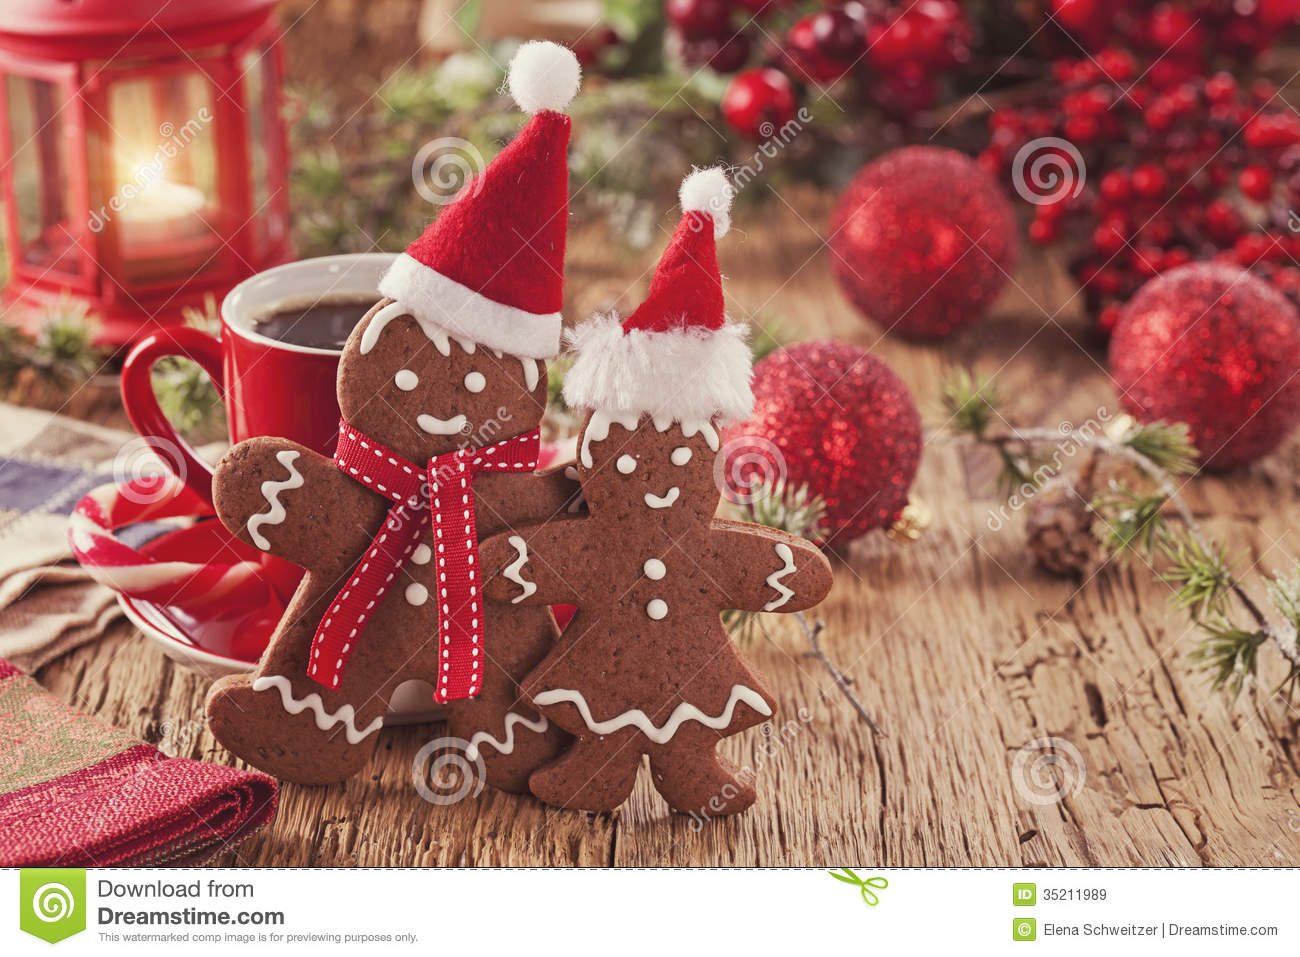 Christmas Gingerbread Men Royalty Free Stock Images - Image: 35211989